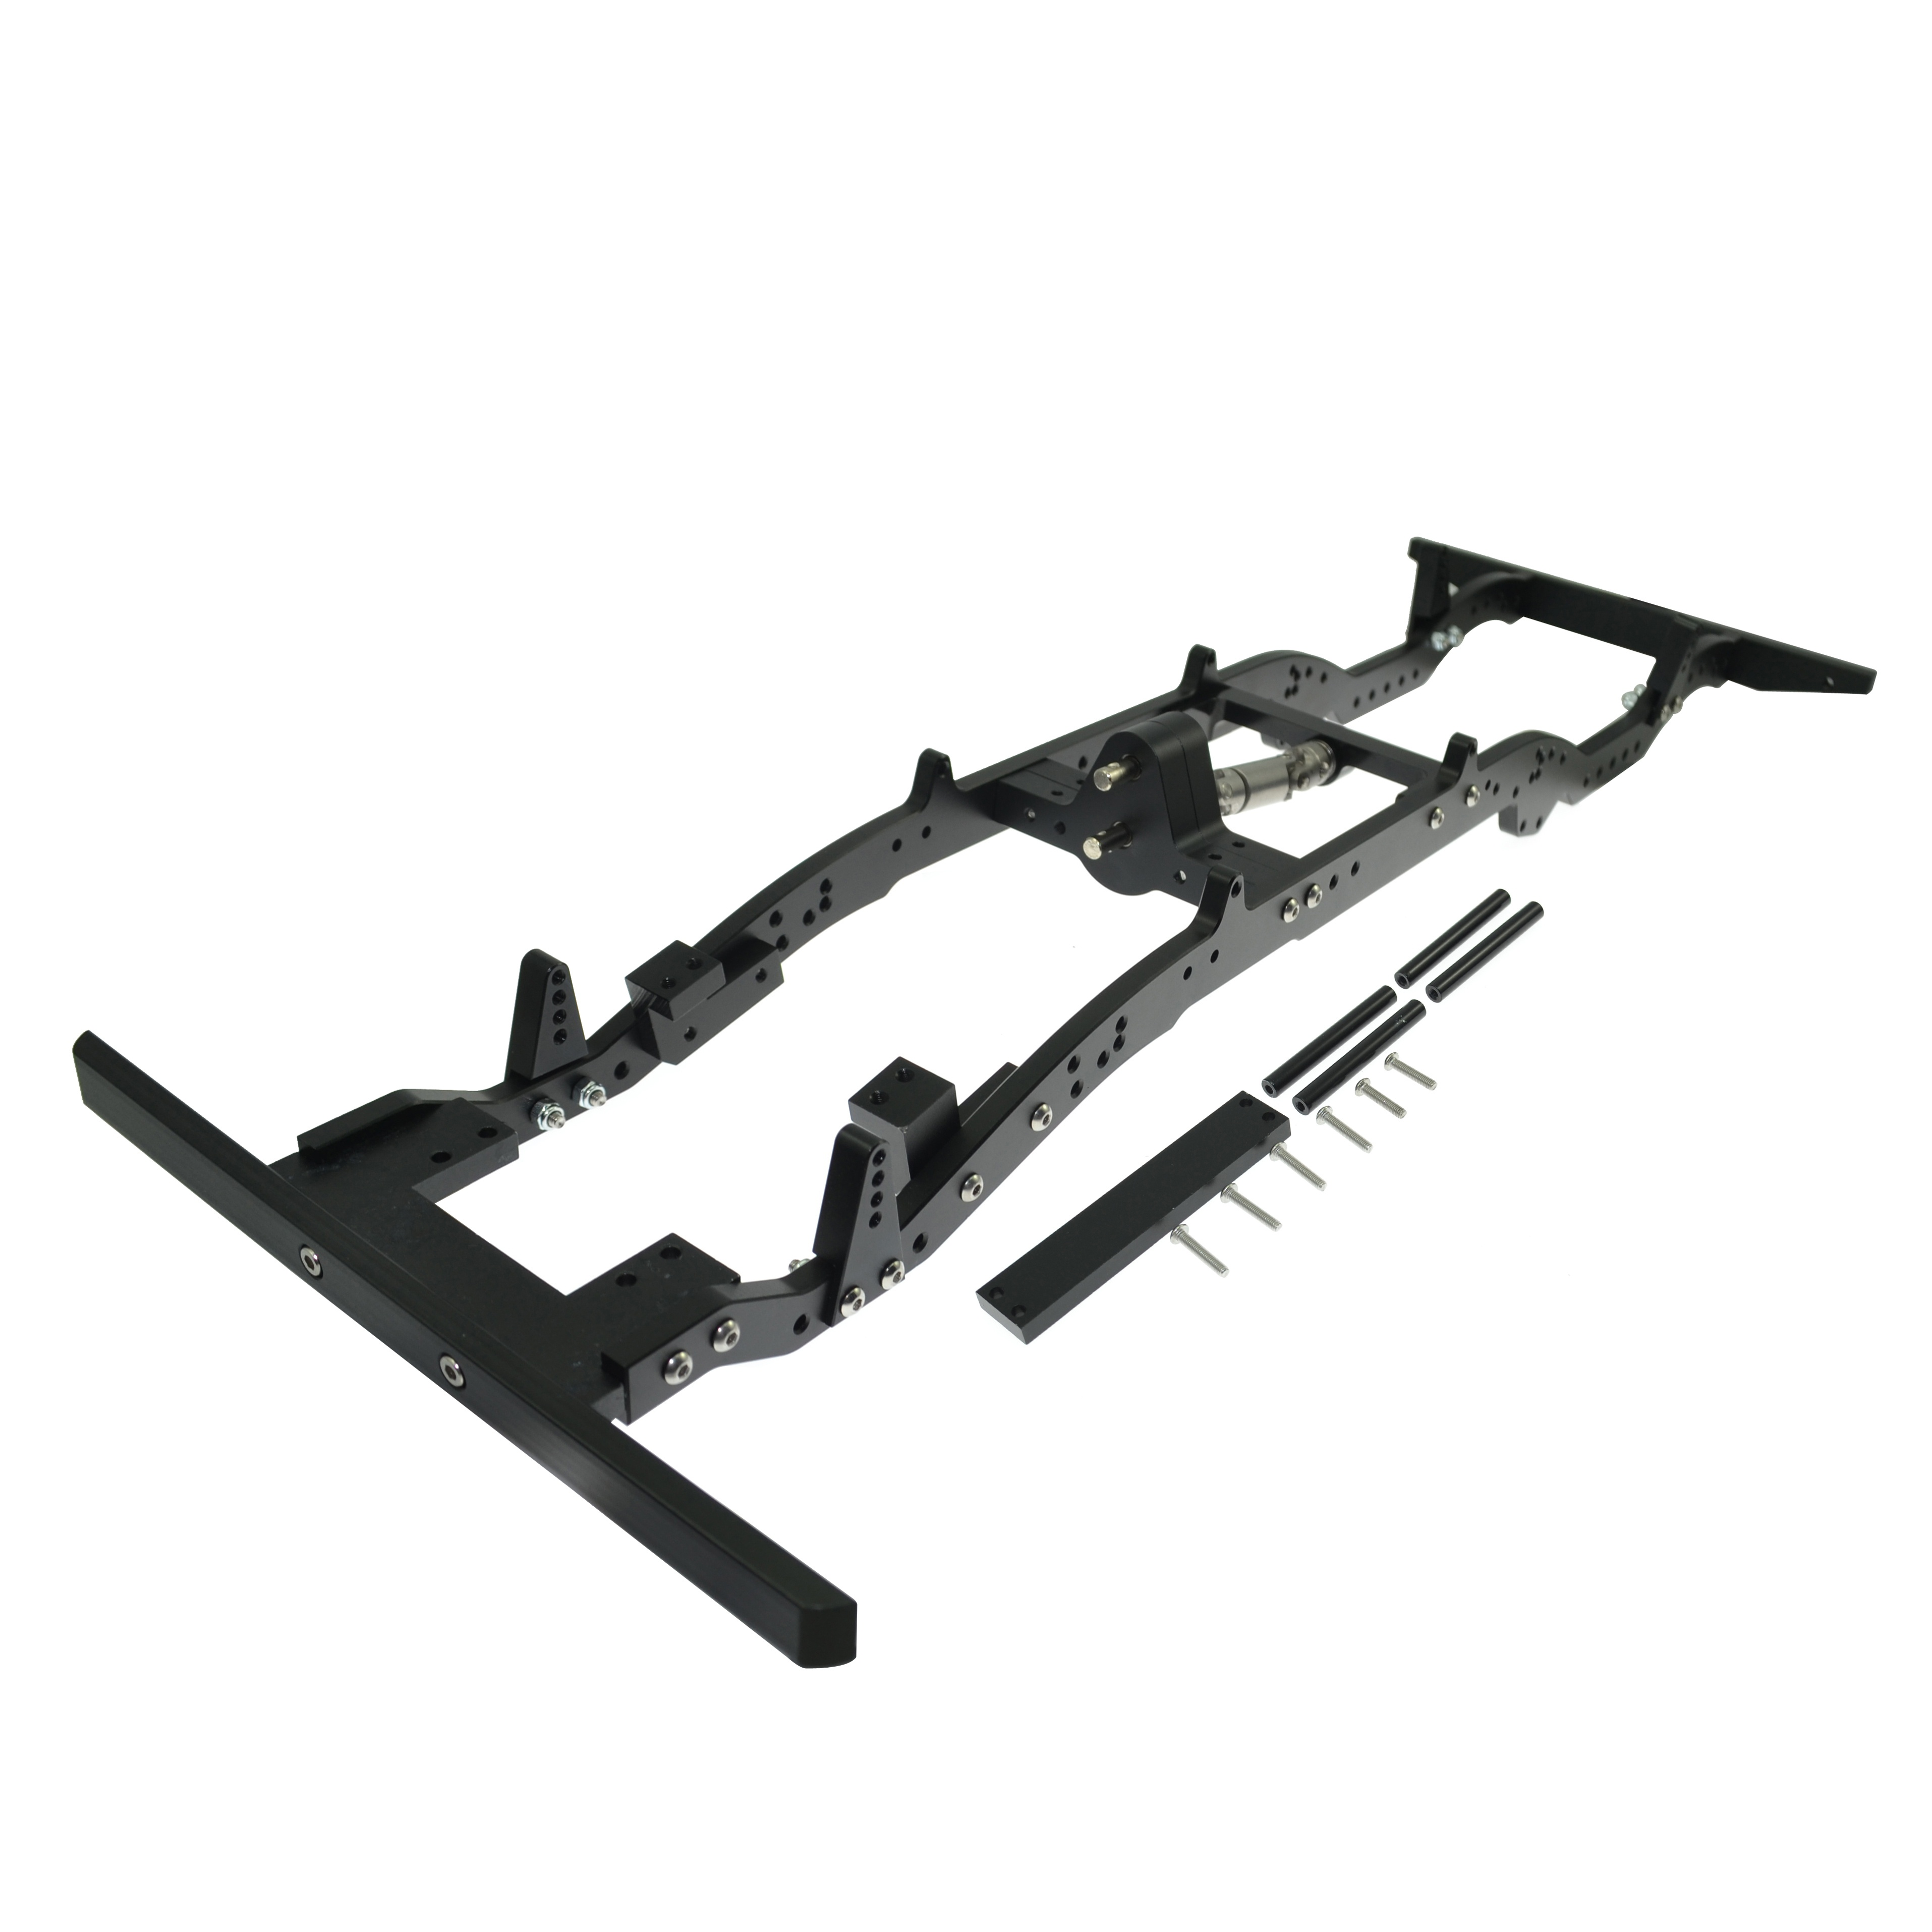 Rc Crawler D110 Aluminium alloy Chassis for 1/10 Axial Scx10 D110 313MM Wheelbase  rc car crawlers frame bracket for axial scx10 adjustable wheelbase 313mm 305mm 290mm